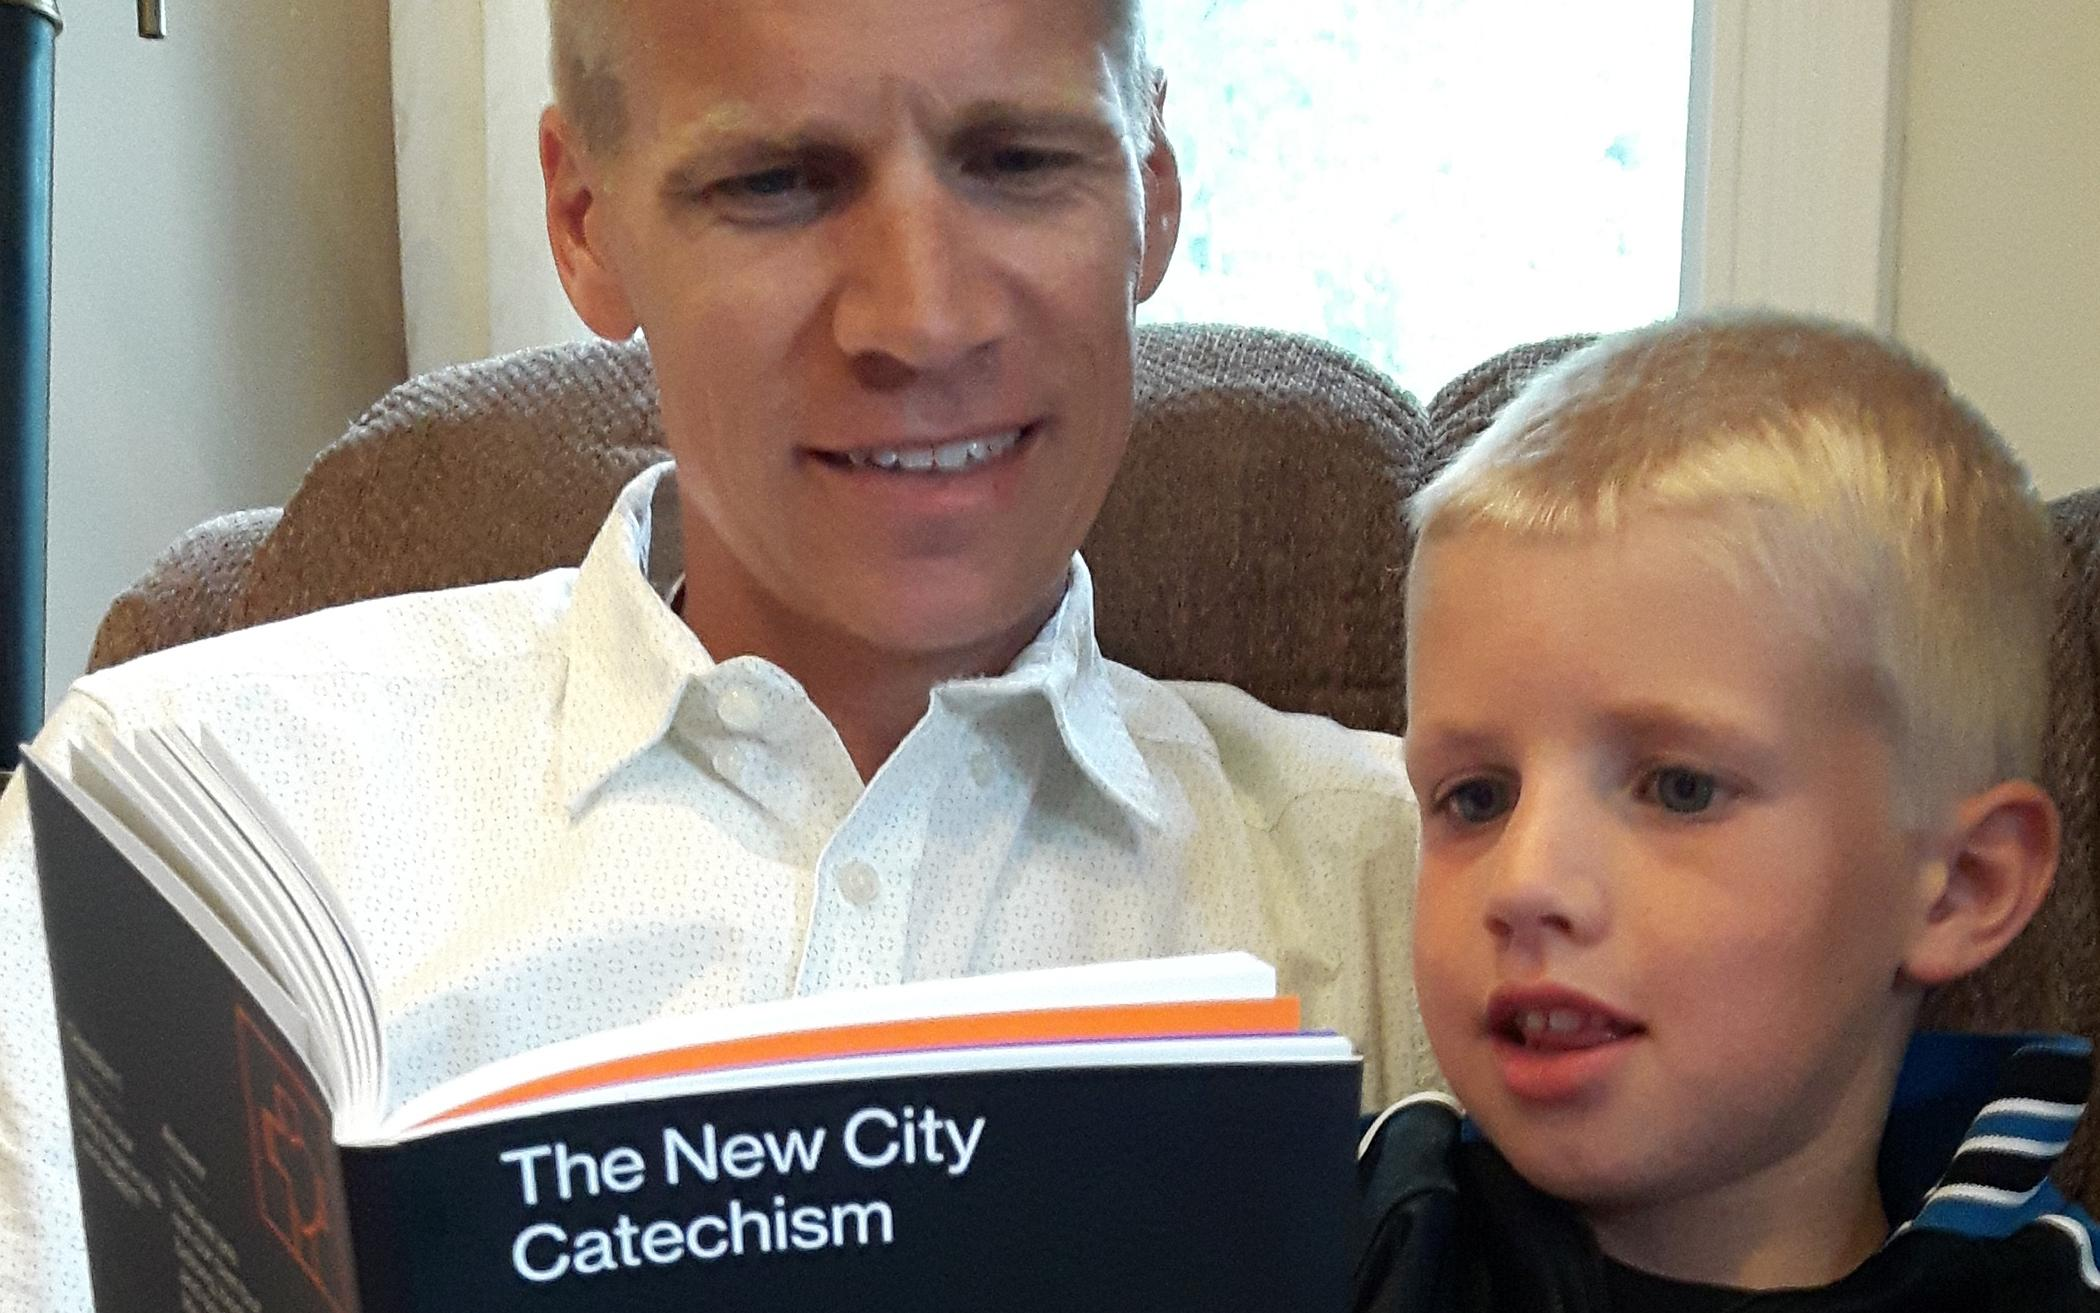 Varying Views on The New City Catechism